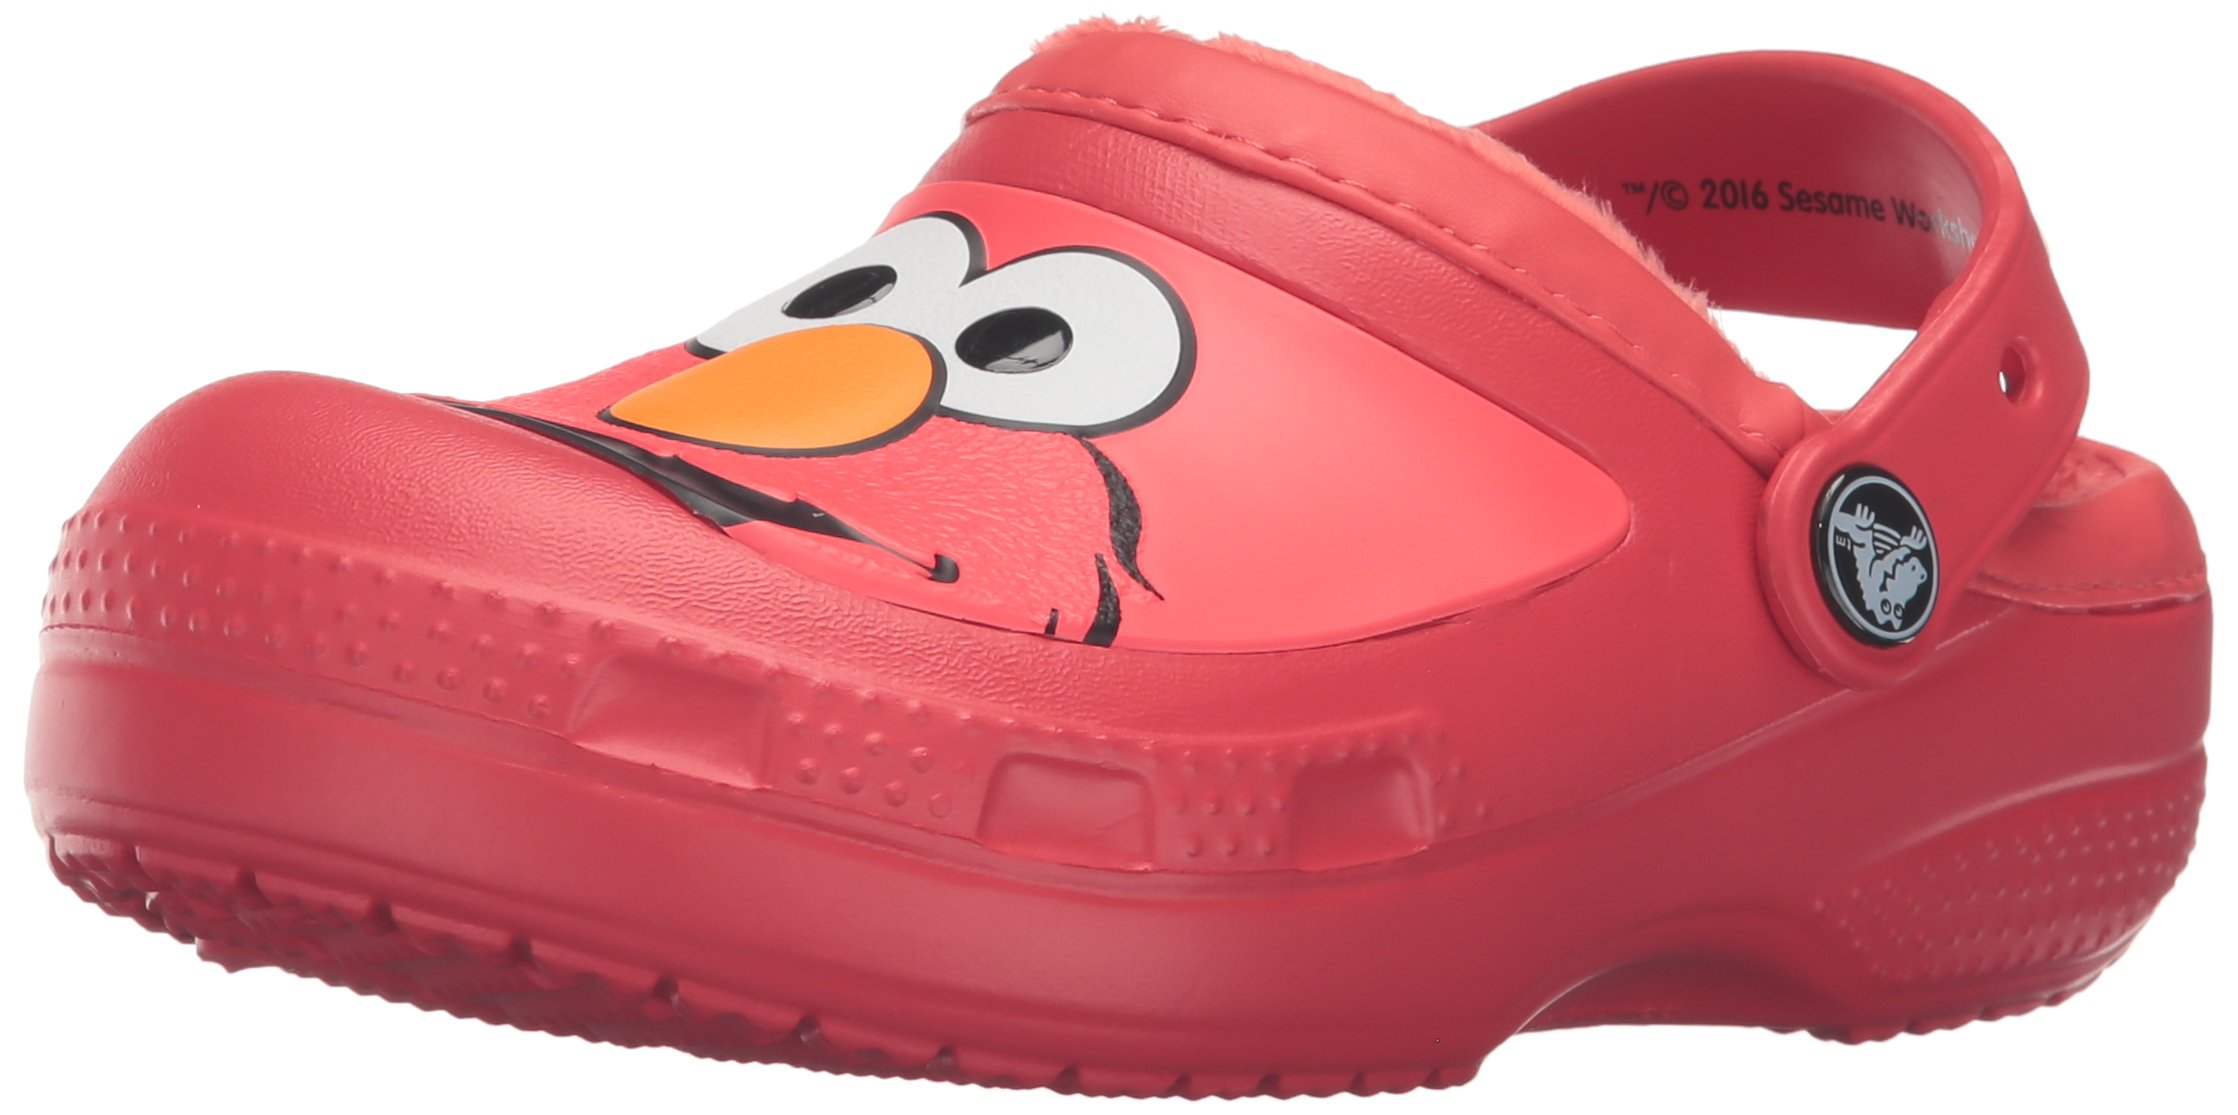 crocs CC Elmo Lined Clog (Toddler/Little Kid), Flame, 3 M US Little Kid